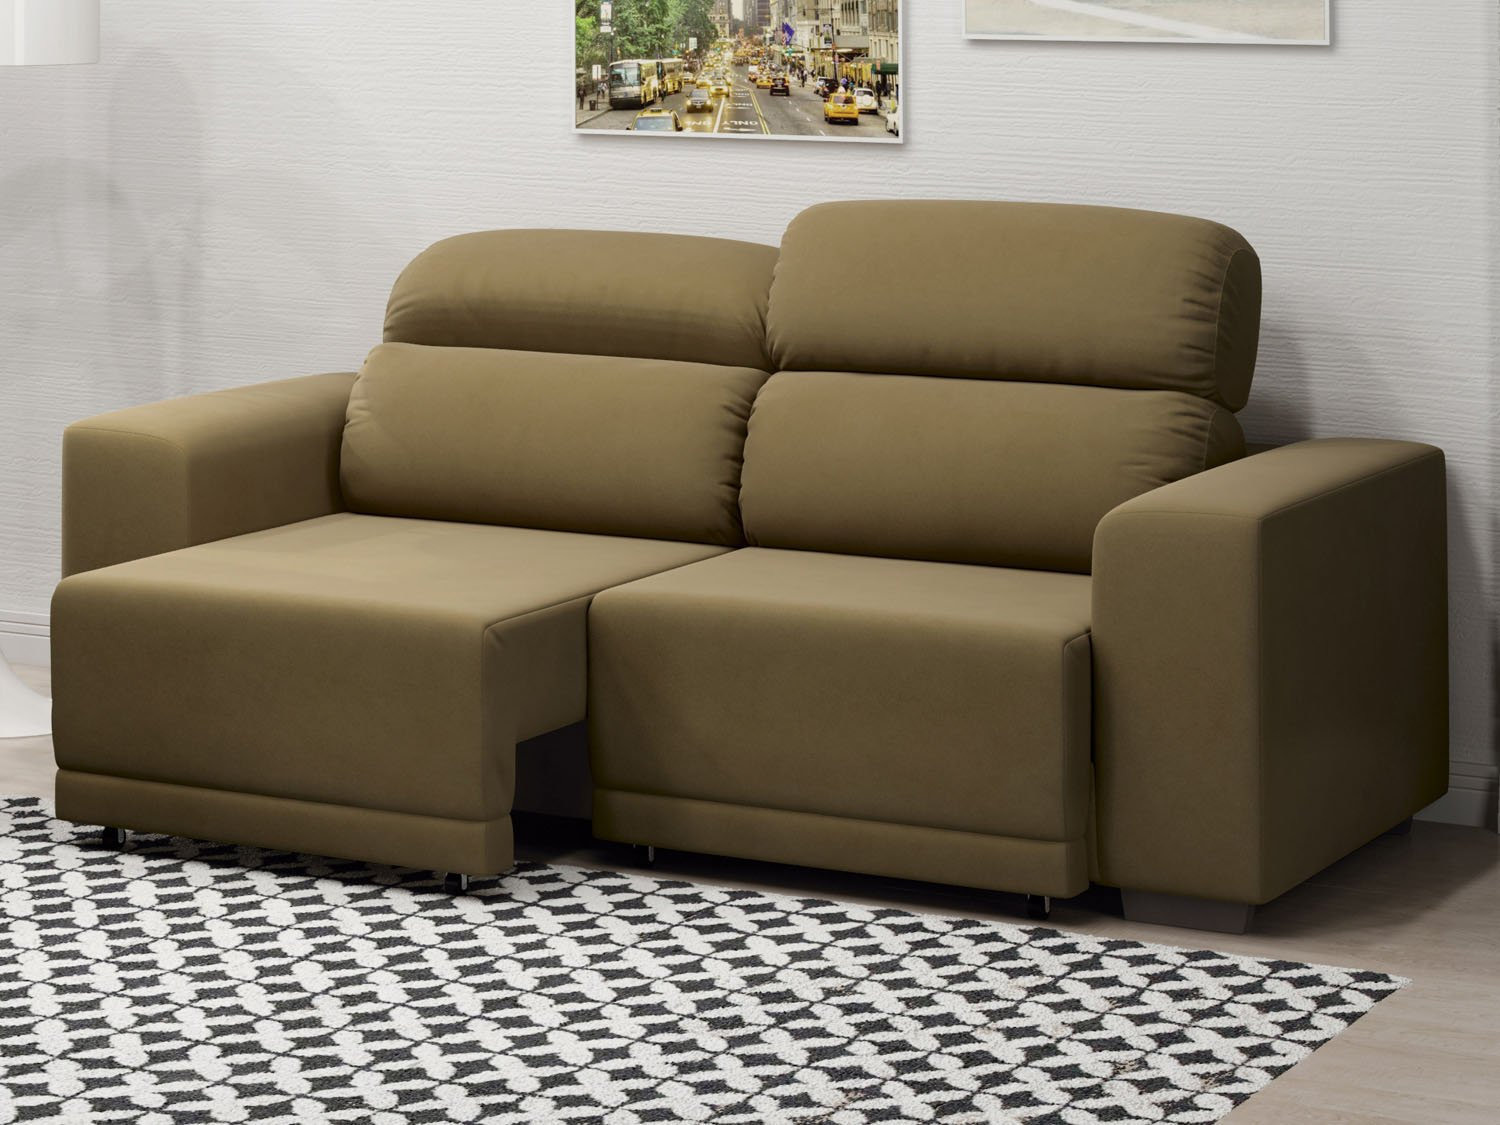 Sof retr til reclin vel 3 lugares ducatto linoforte for Sofa 03 lugares retratil e reclinavel